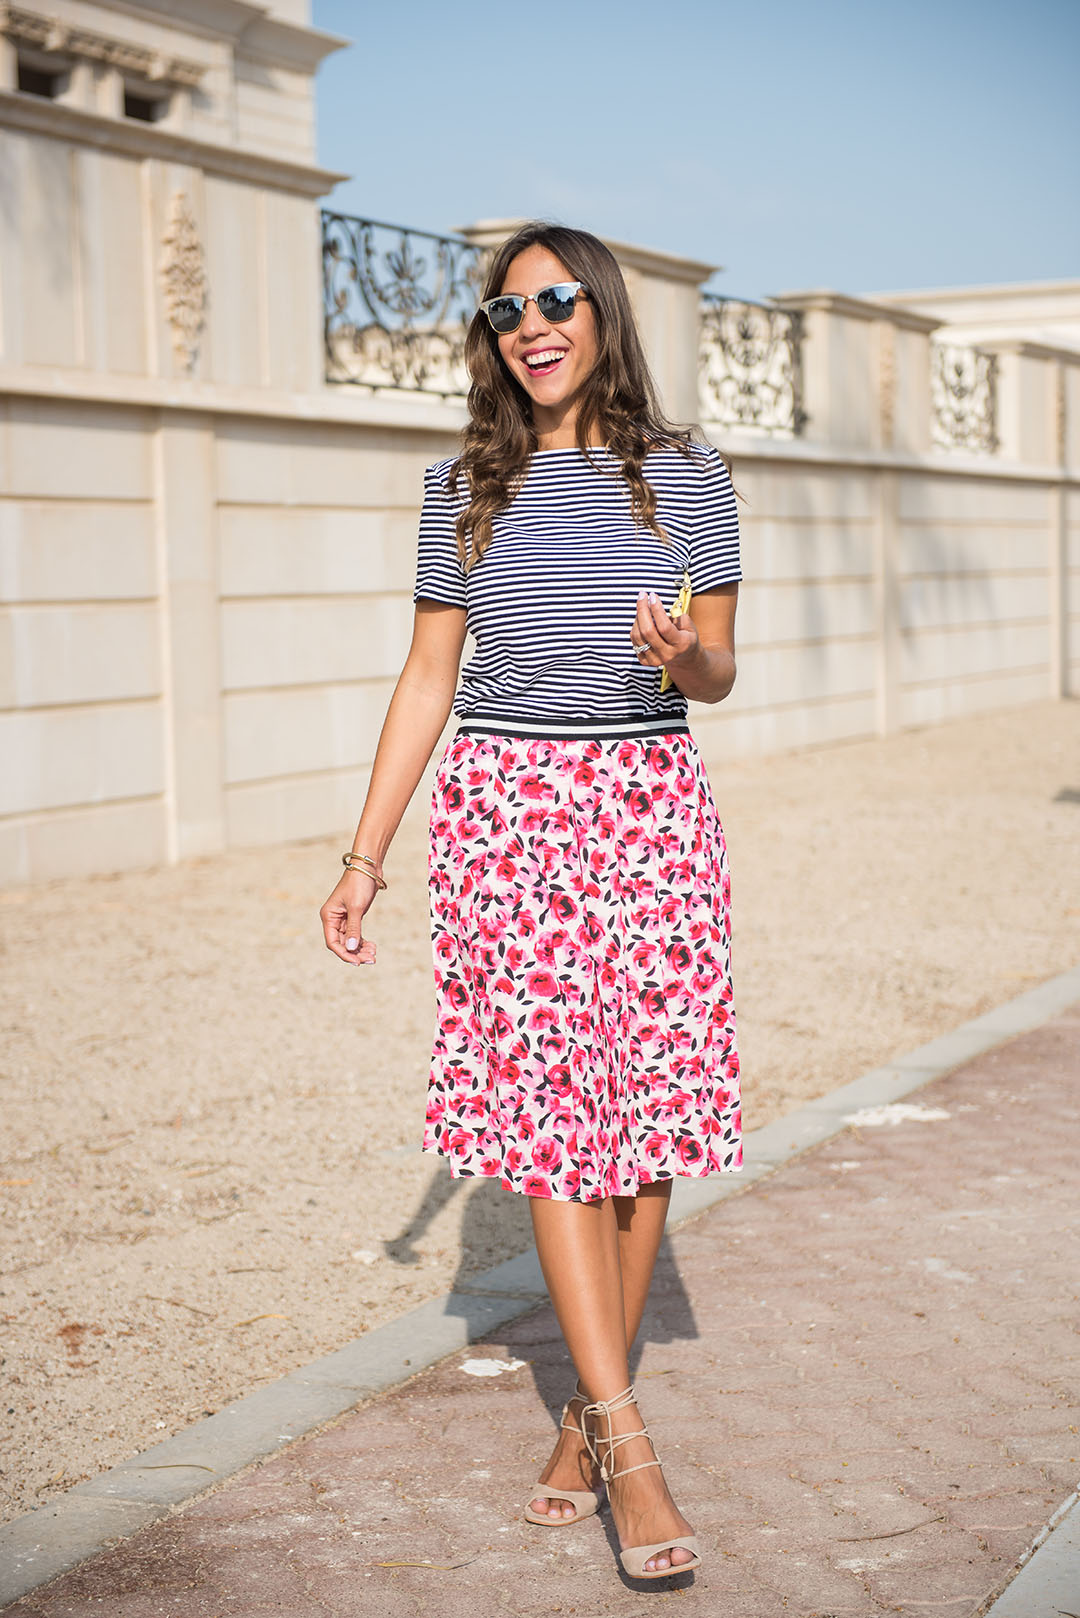 How To Wear A Pleated Skirt Outfit Ideas 2017 - Melonkiss